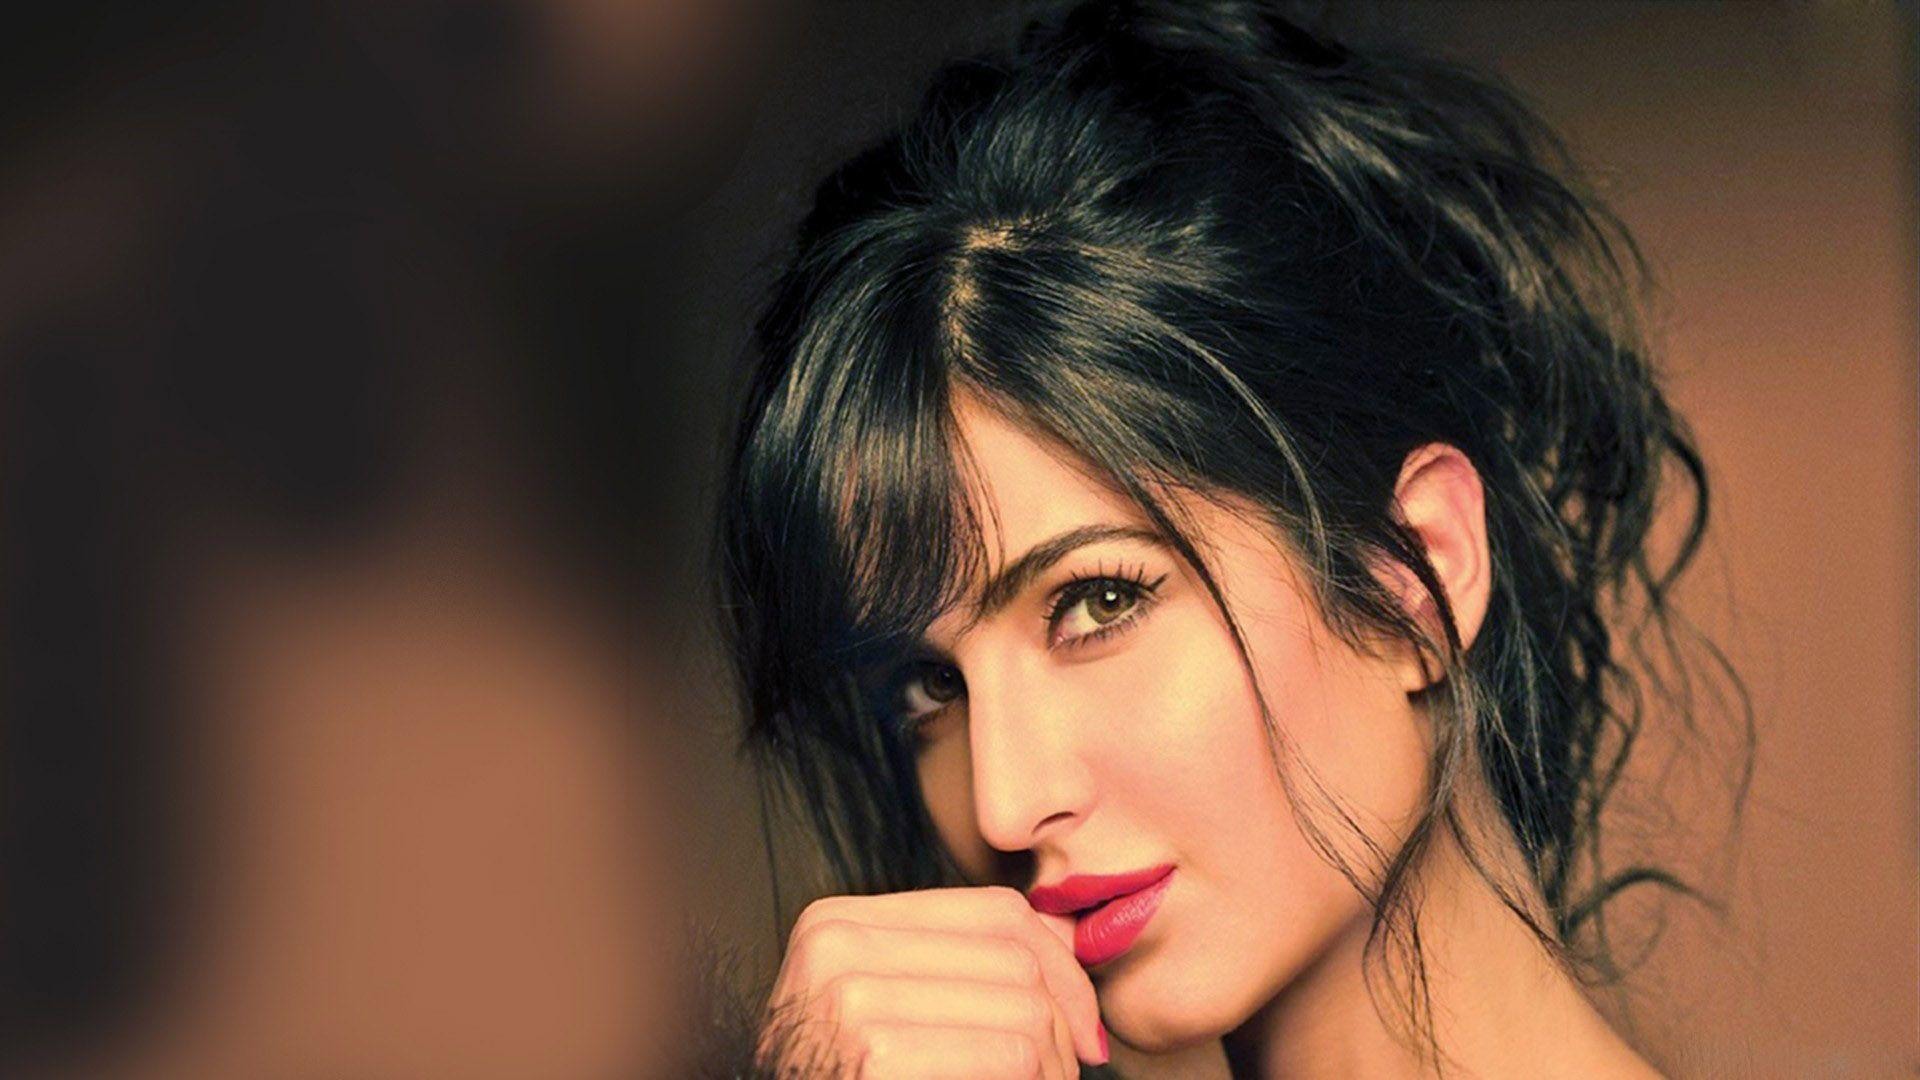 katrina kaif hd wallpapers 1080p 2015 - wallpaper cave